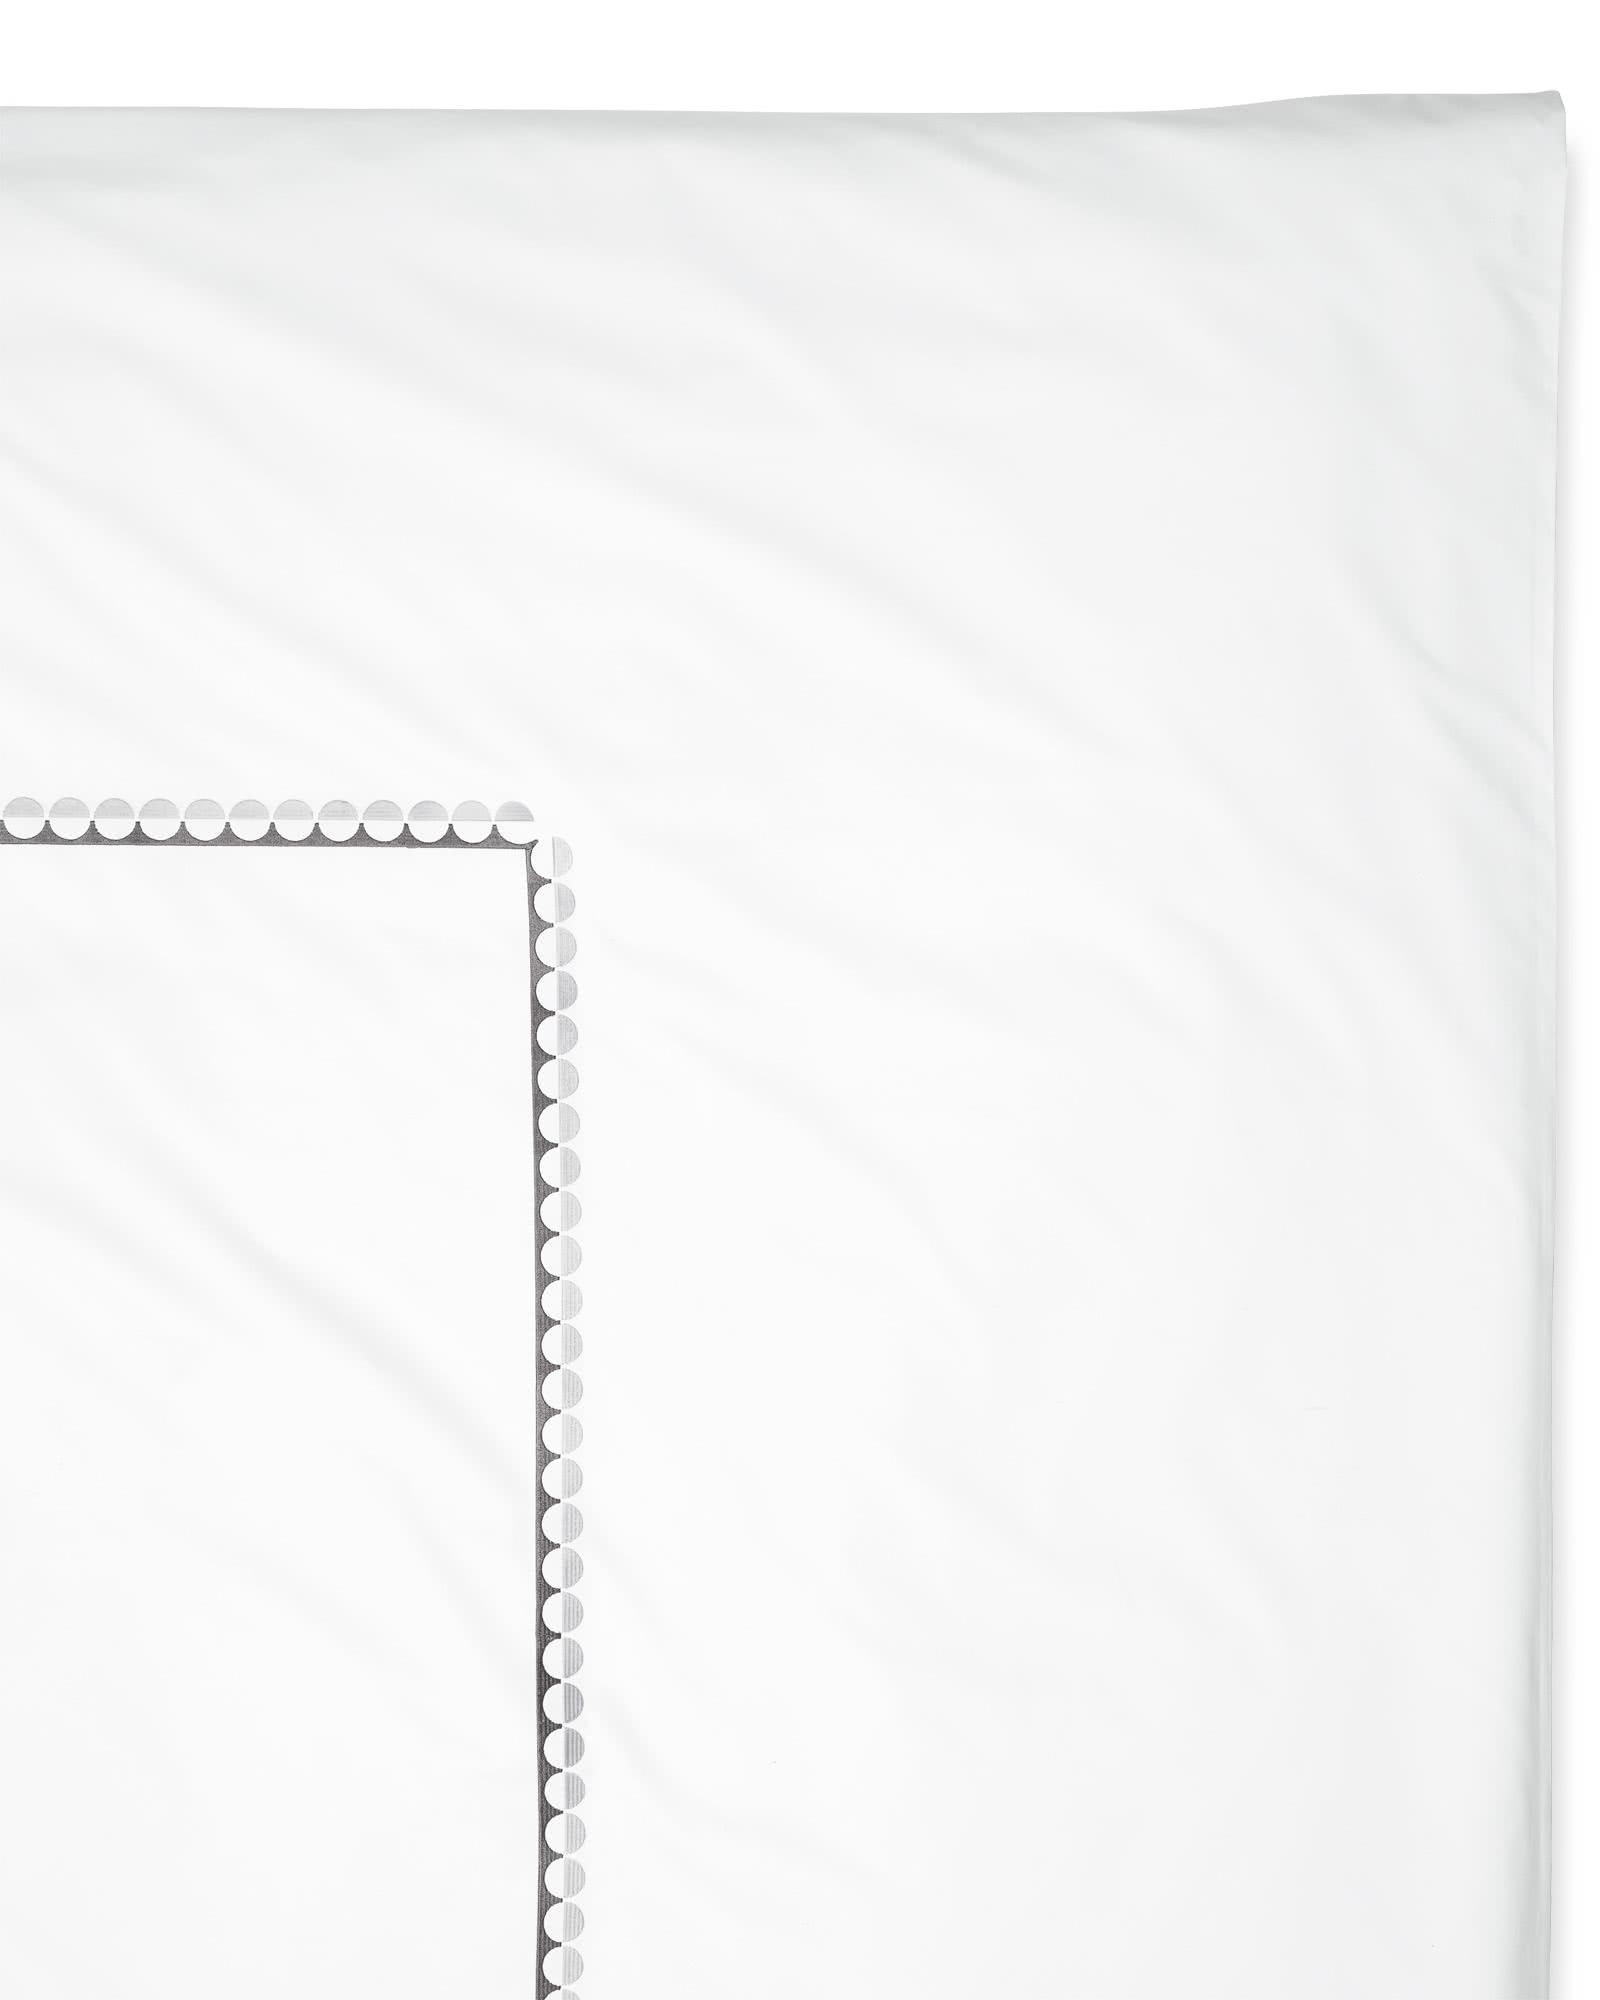 Oceanside Duvet Cover, Fog